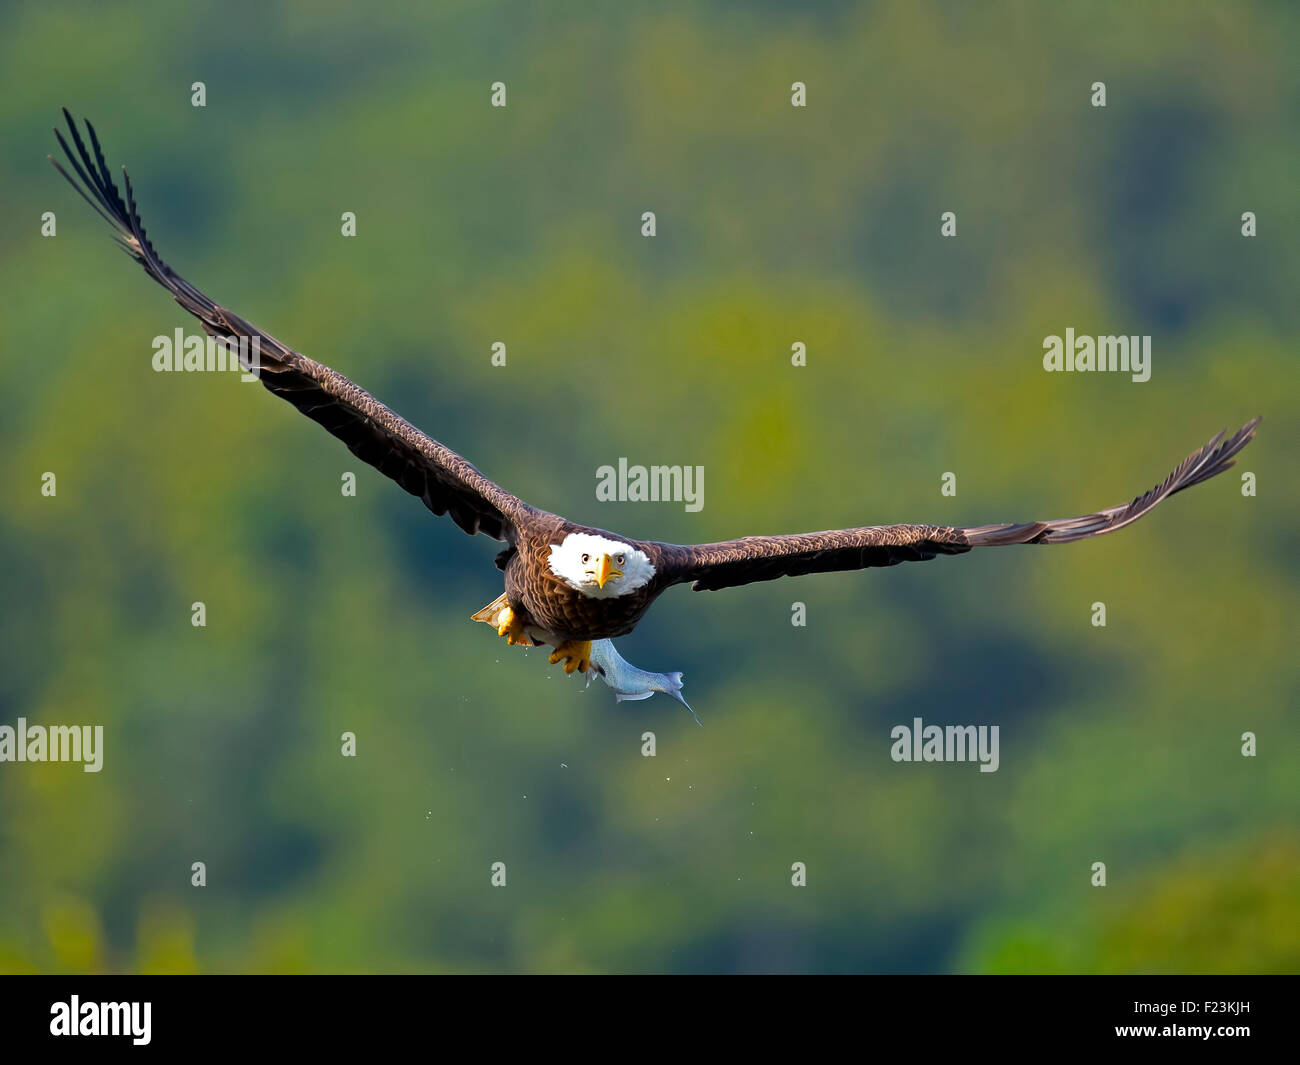 American Bald Eagle in flight with Large Fish - Stock Image